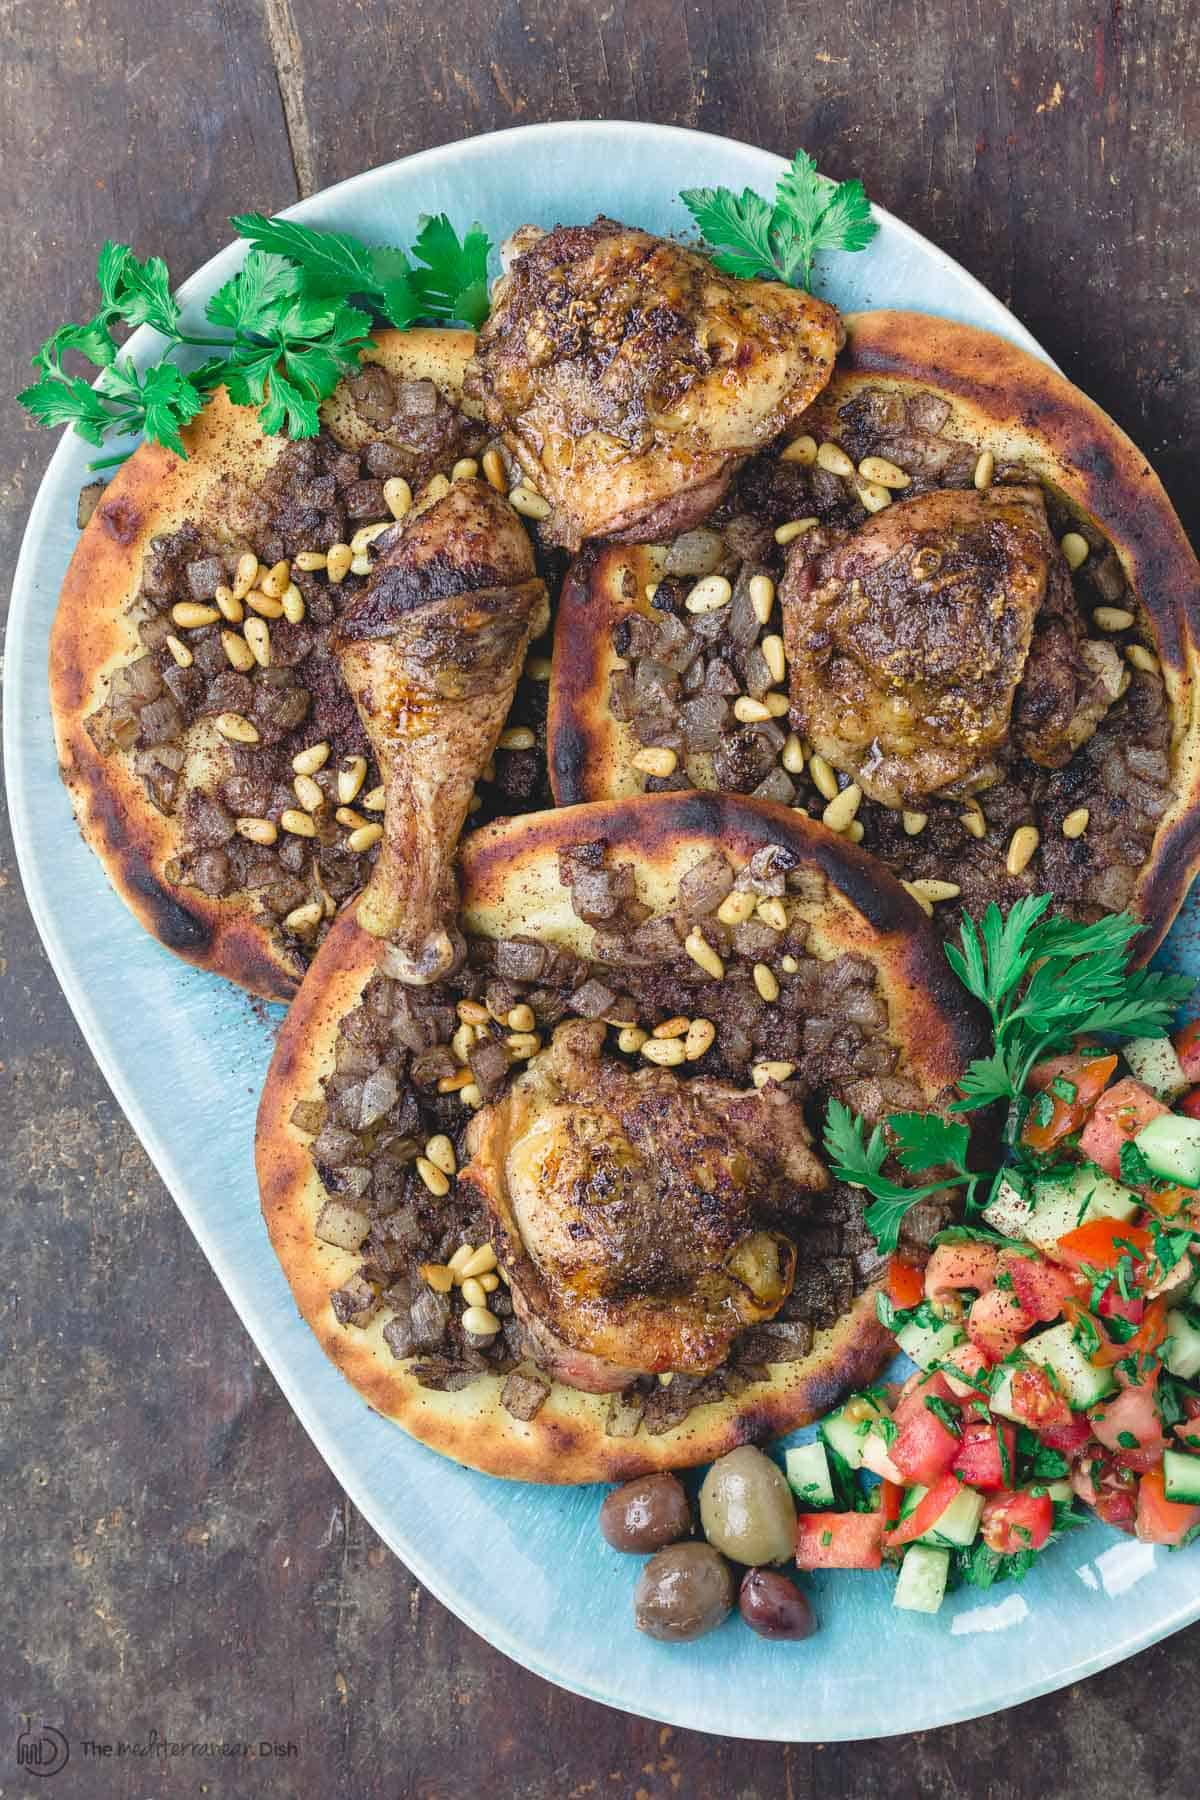 Musakhan sumac chicken over carmalized onion flatbread with side salad